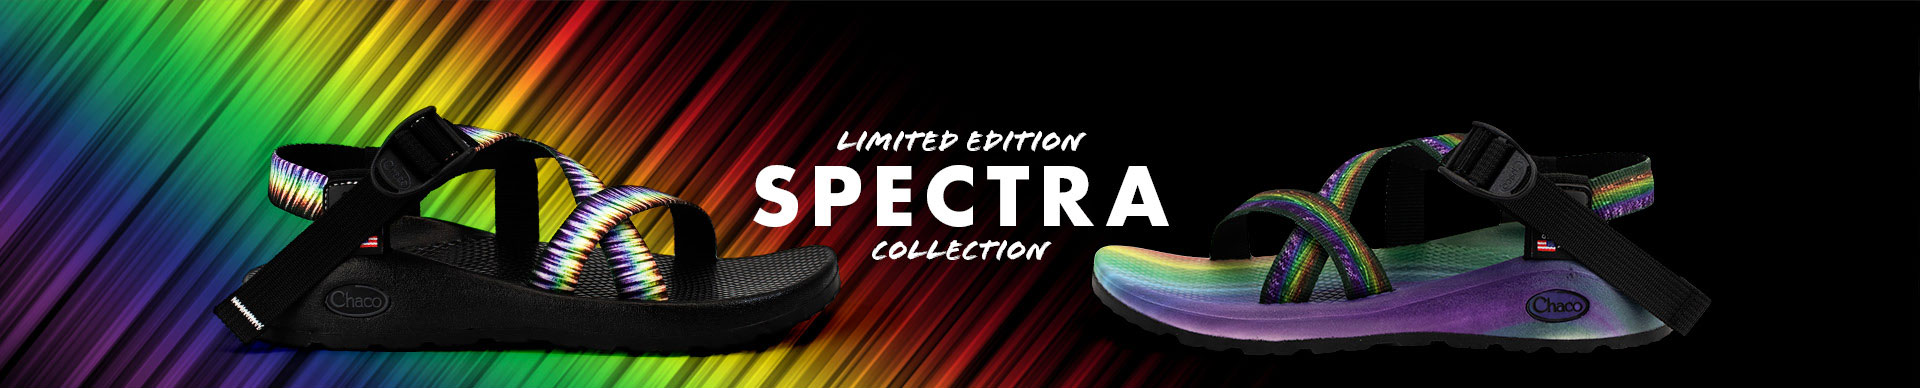 Limited Edition Spectra Collection